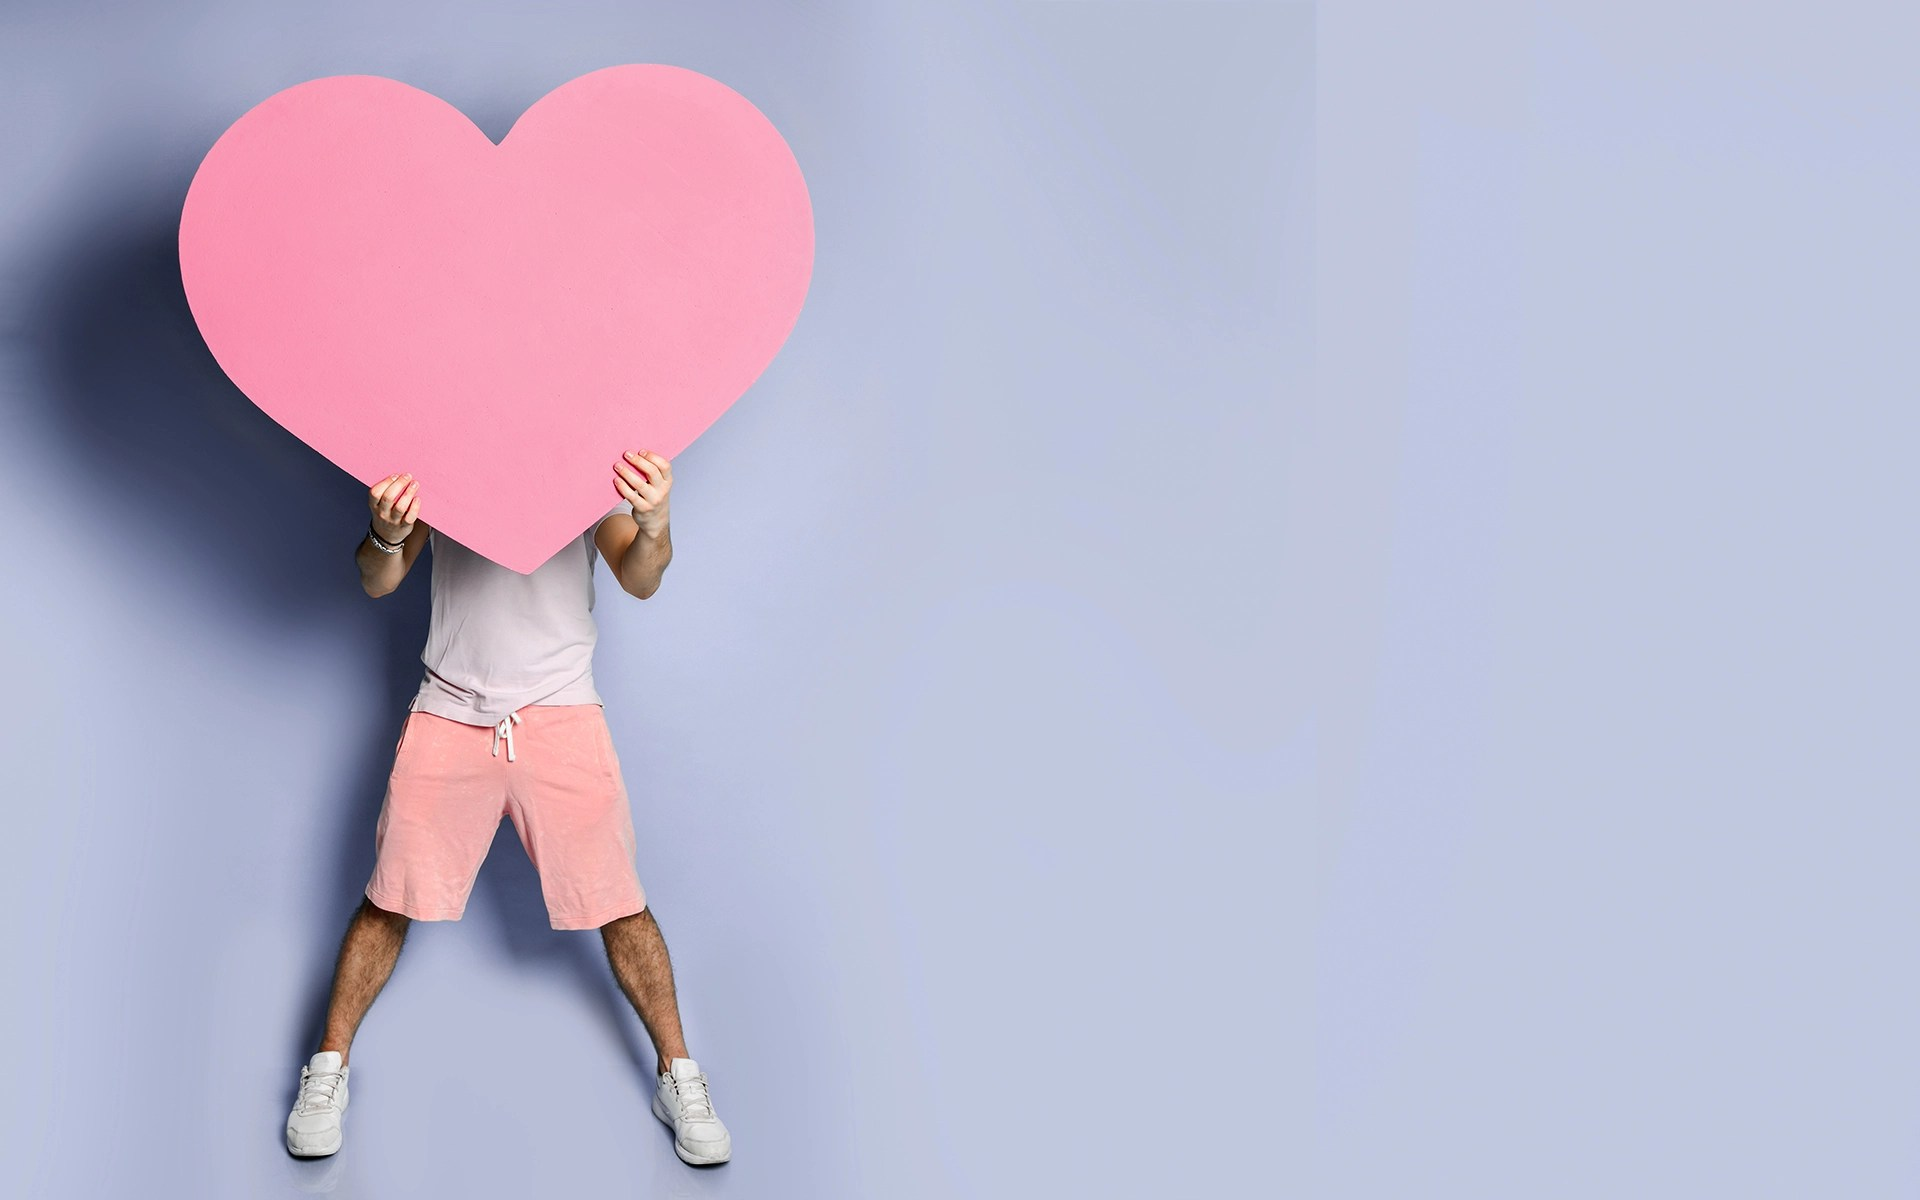 Loving-Kindness Guided Meditation - Young man hide his face behind pink heart shape toy in hands on